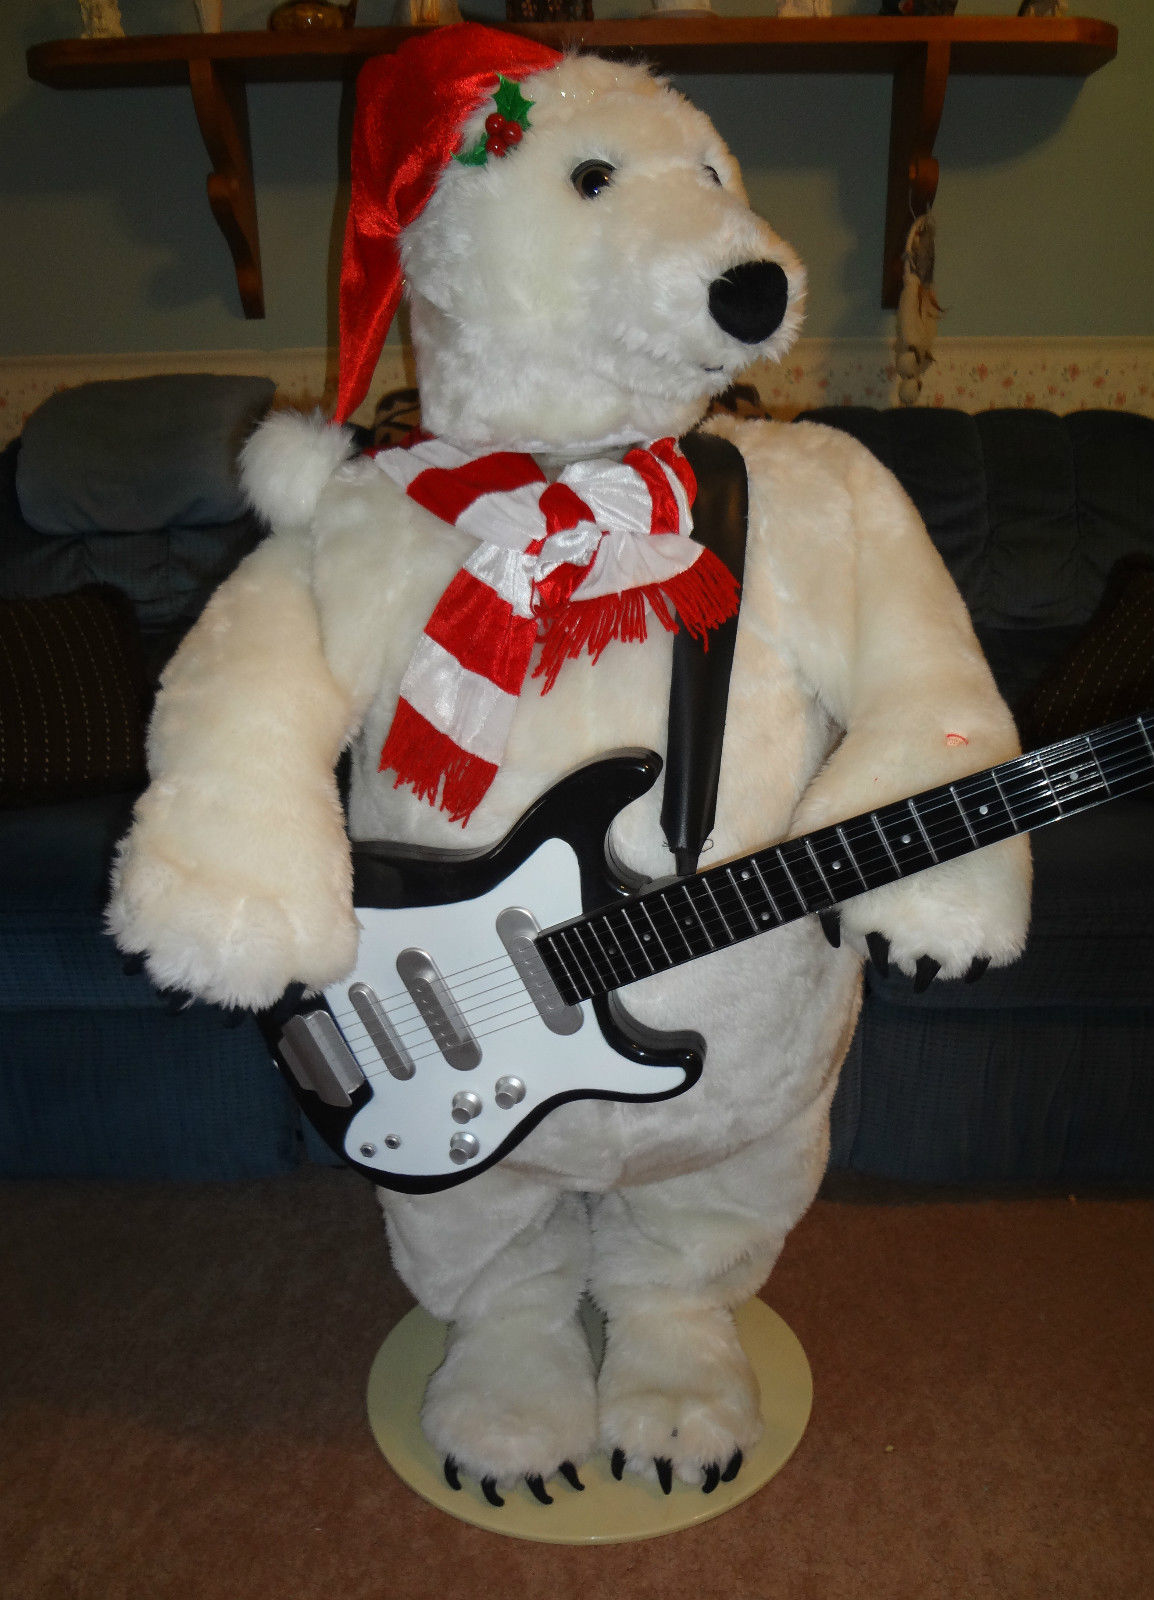 animated christmas decoration polar bear playing giutar animatronicjpg - Animatronic Christmas Decorations